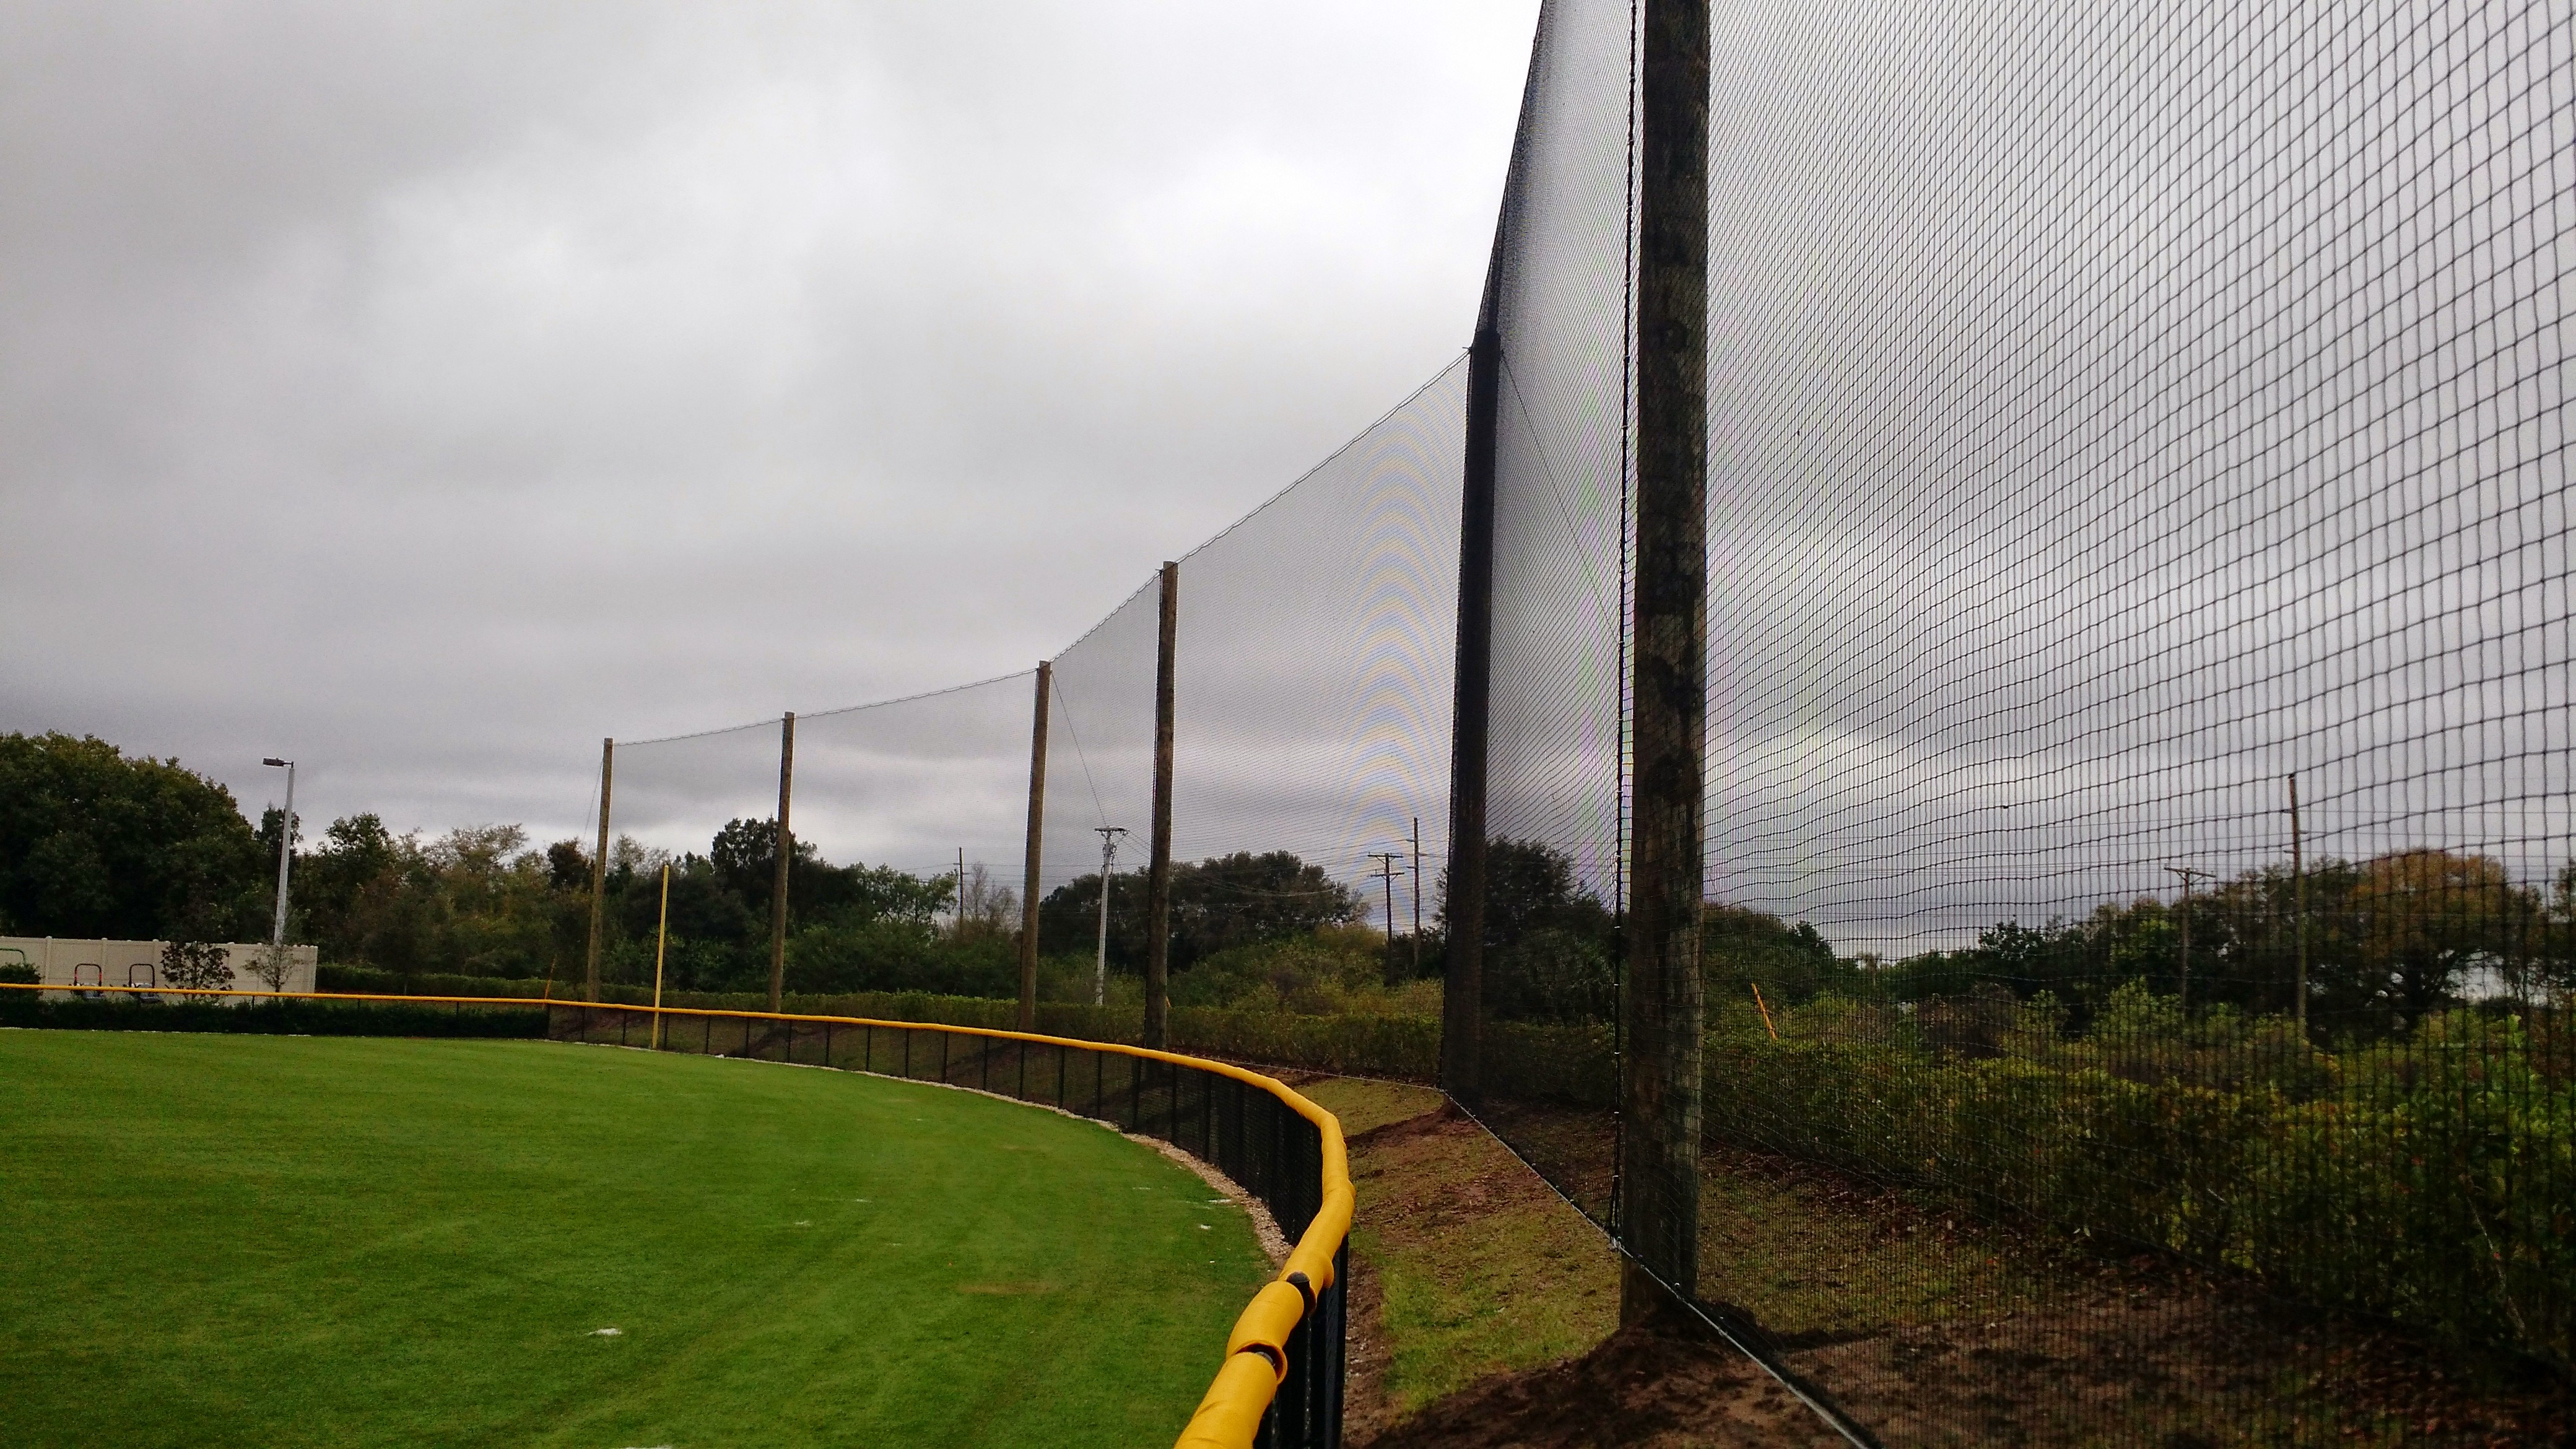 40 foot high sports netting